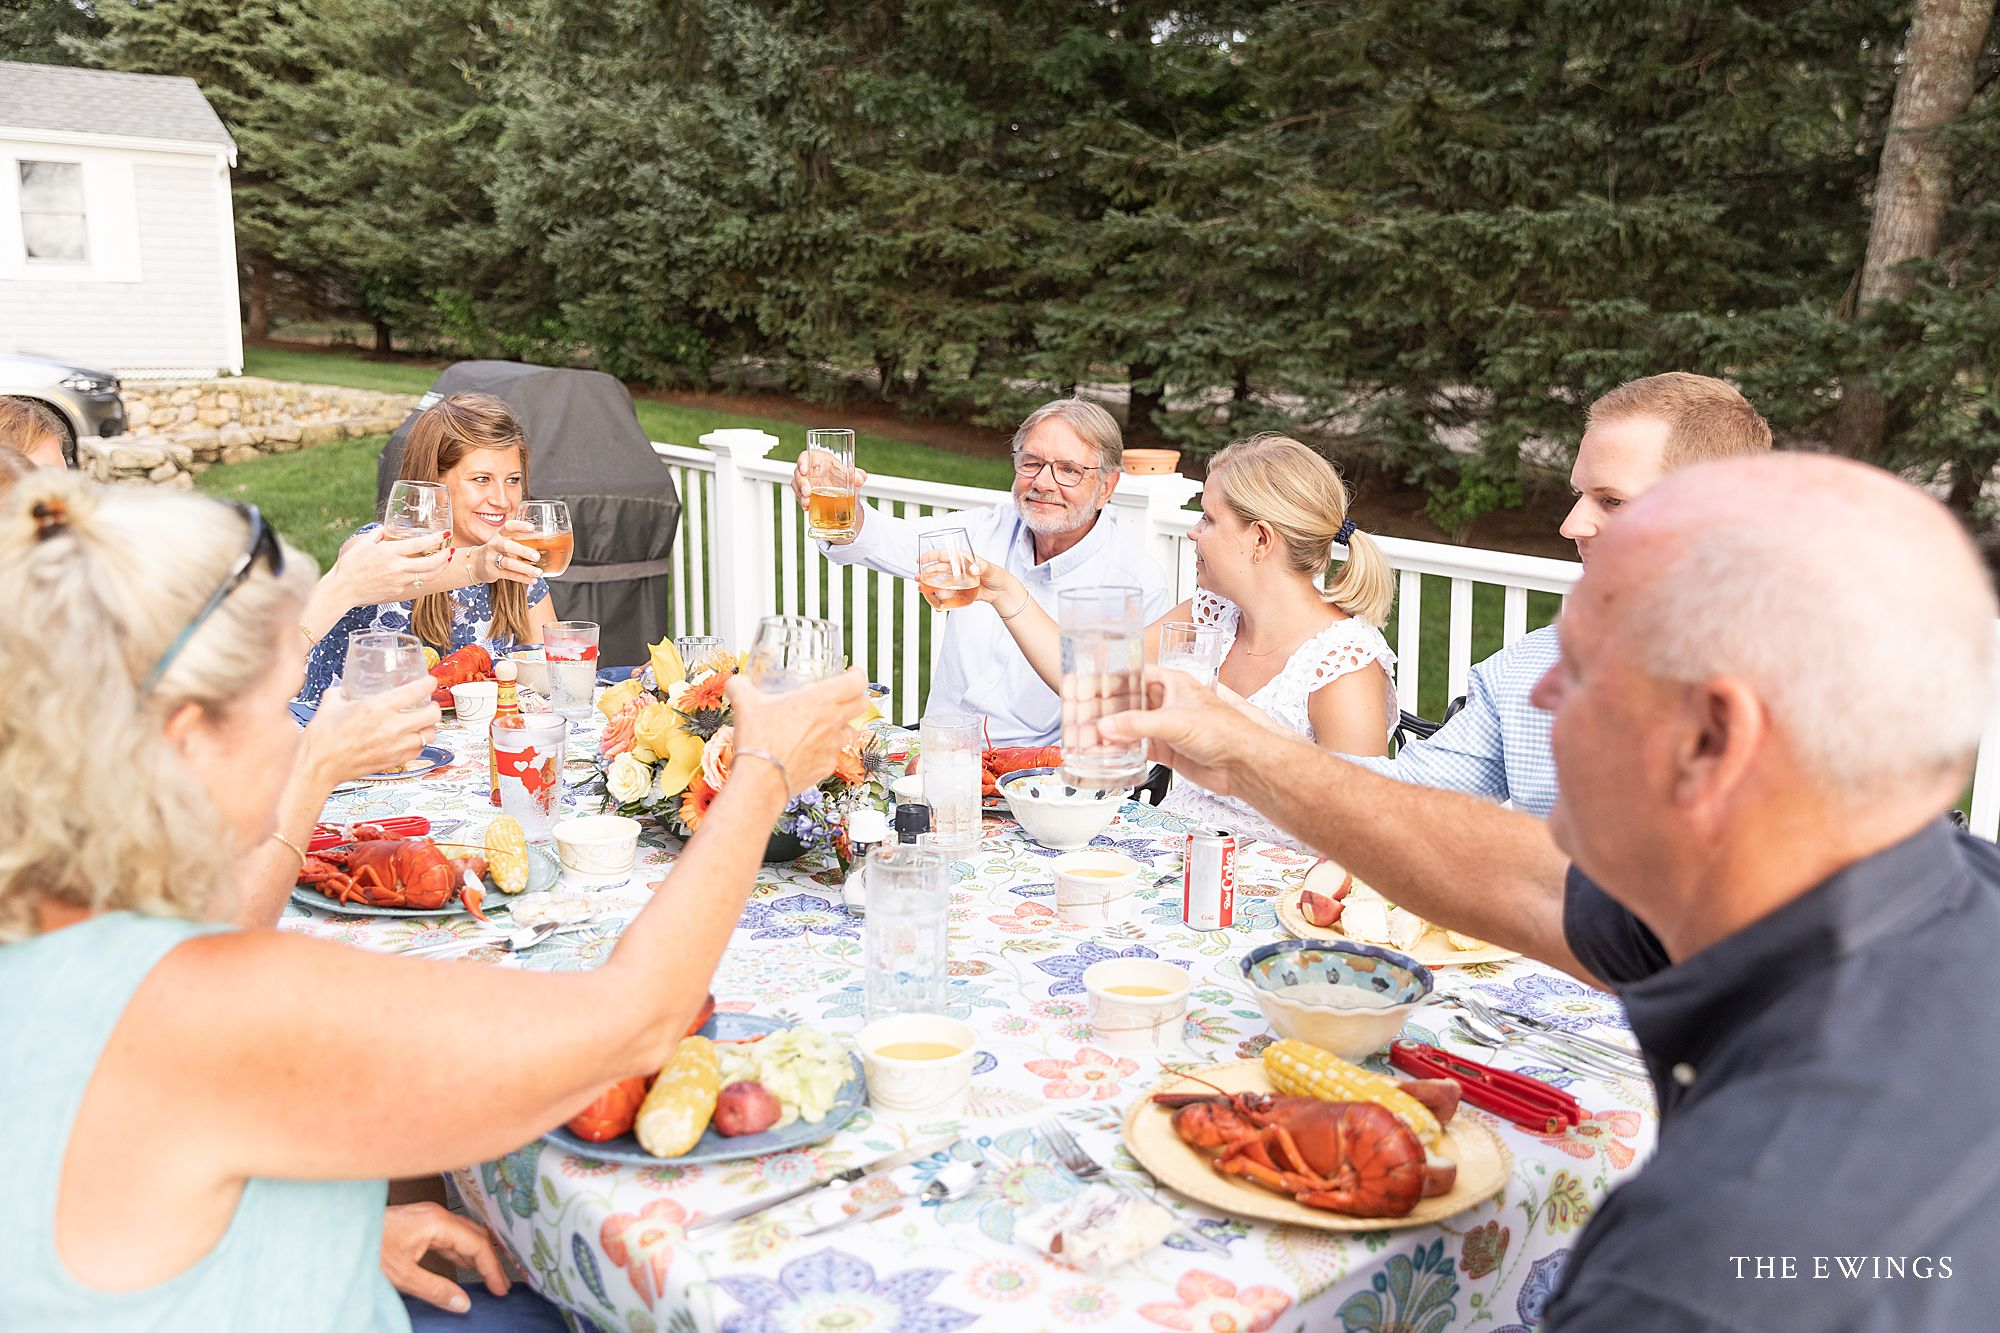 The best way to end an elopement micro wedding is with a clam bake! This 10 person wedding in Cotuit enjoyed lobsters and steamers at their intimate backyard wedding.